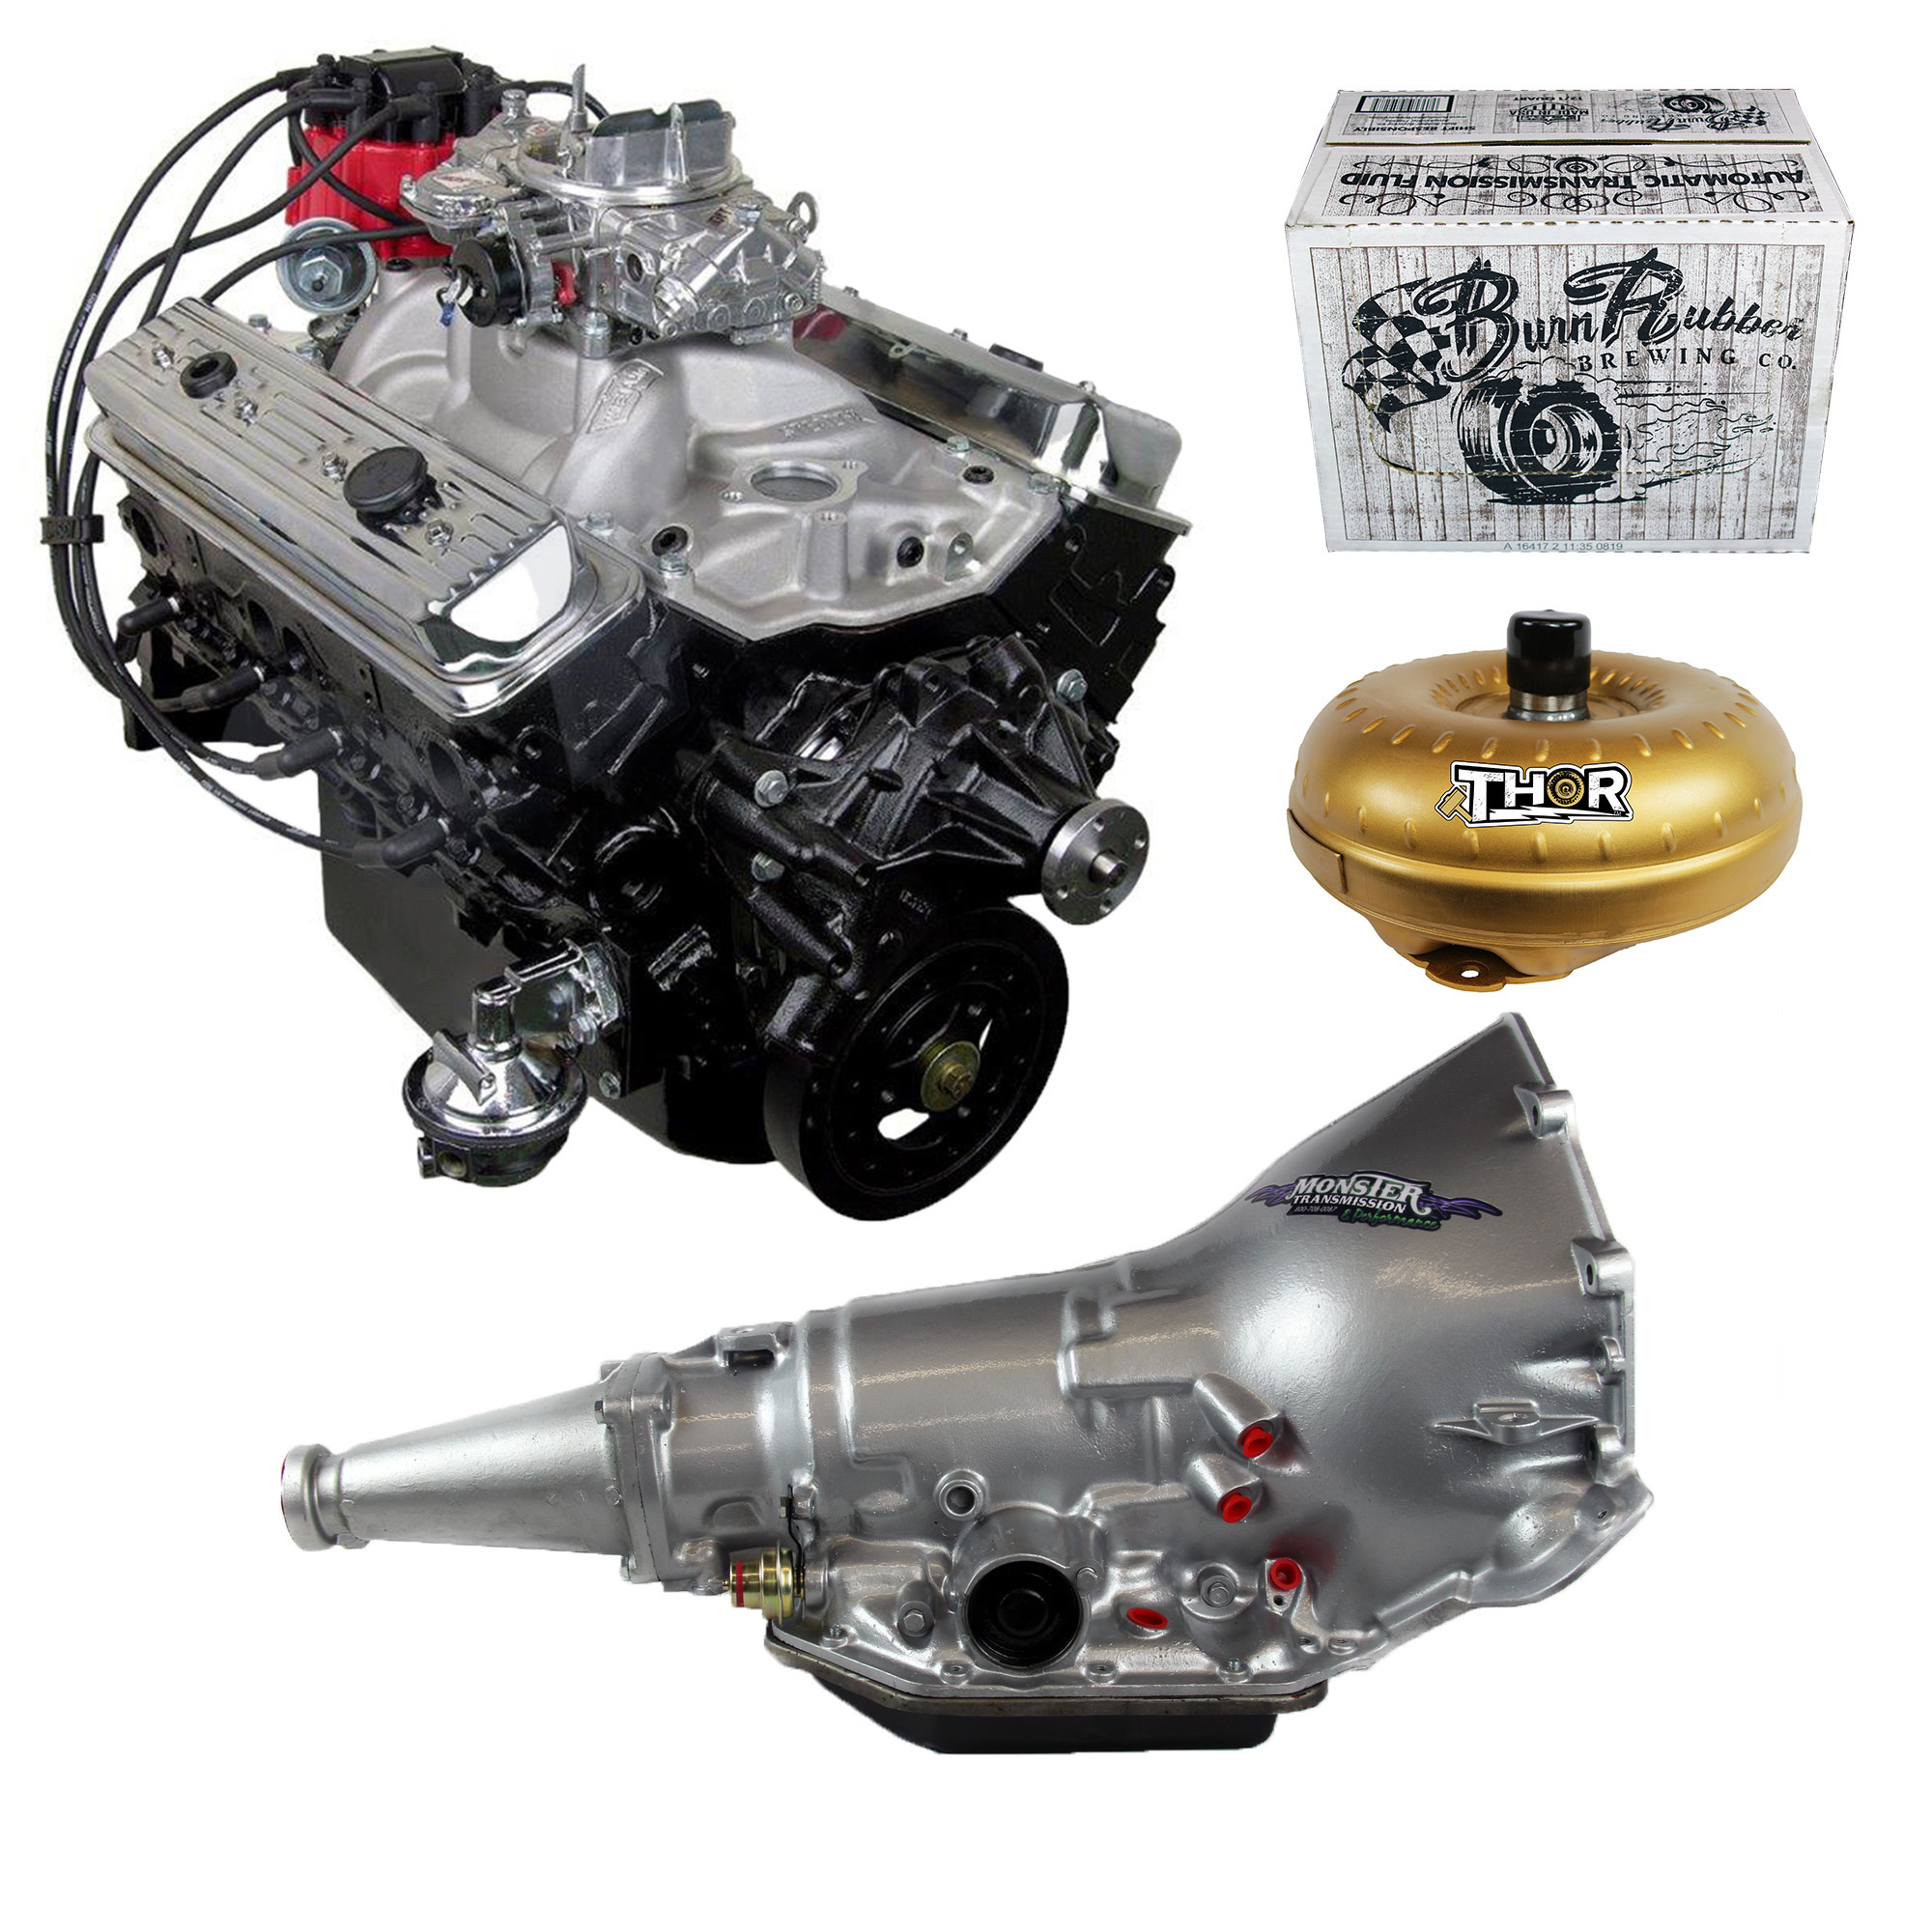 Monster Powertrain Package - Chevy 383 Engine, Rated at 380hp / 460tq on